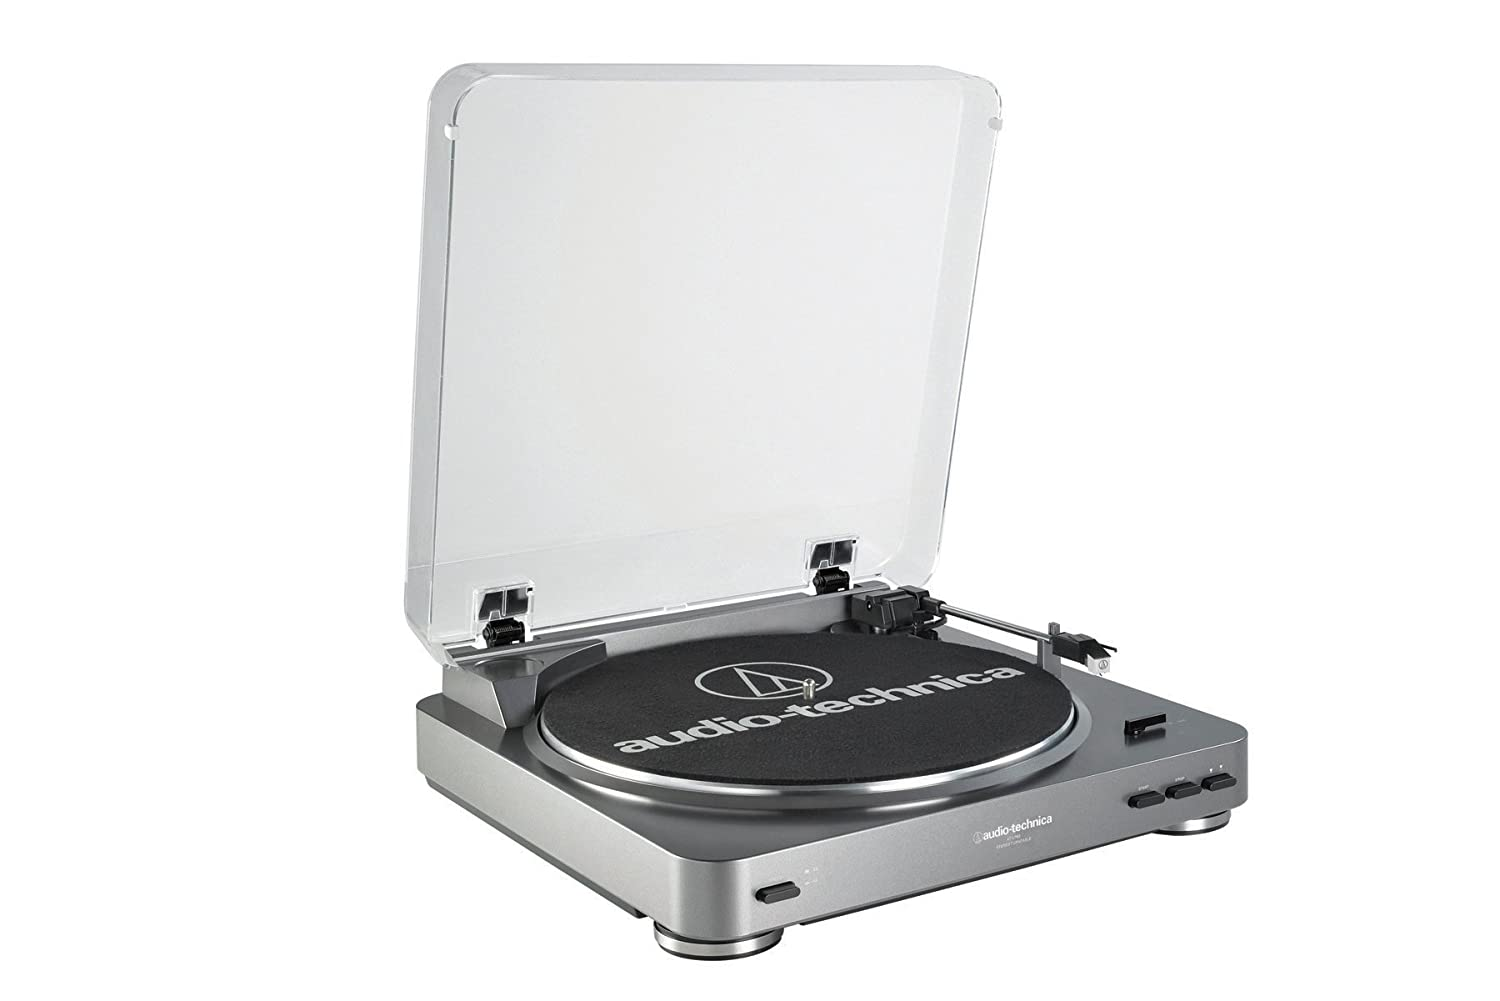 Best cheap record player under $100